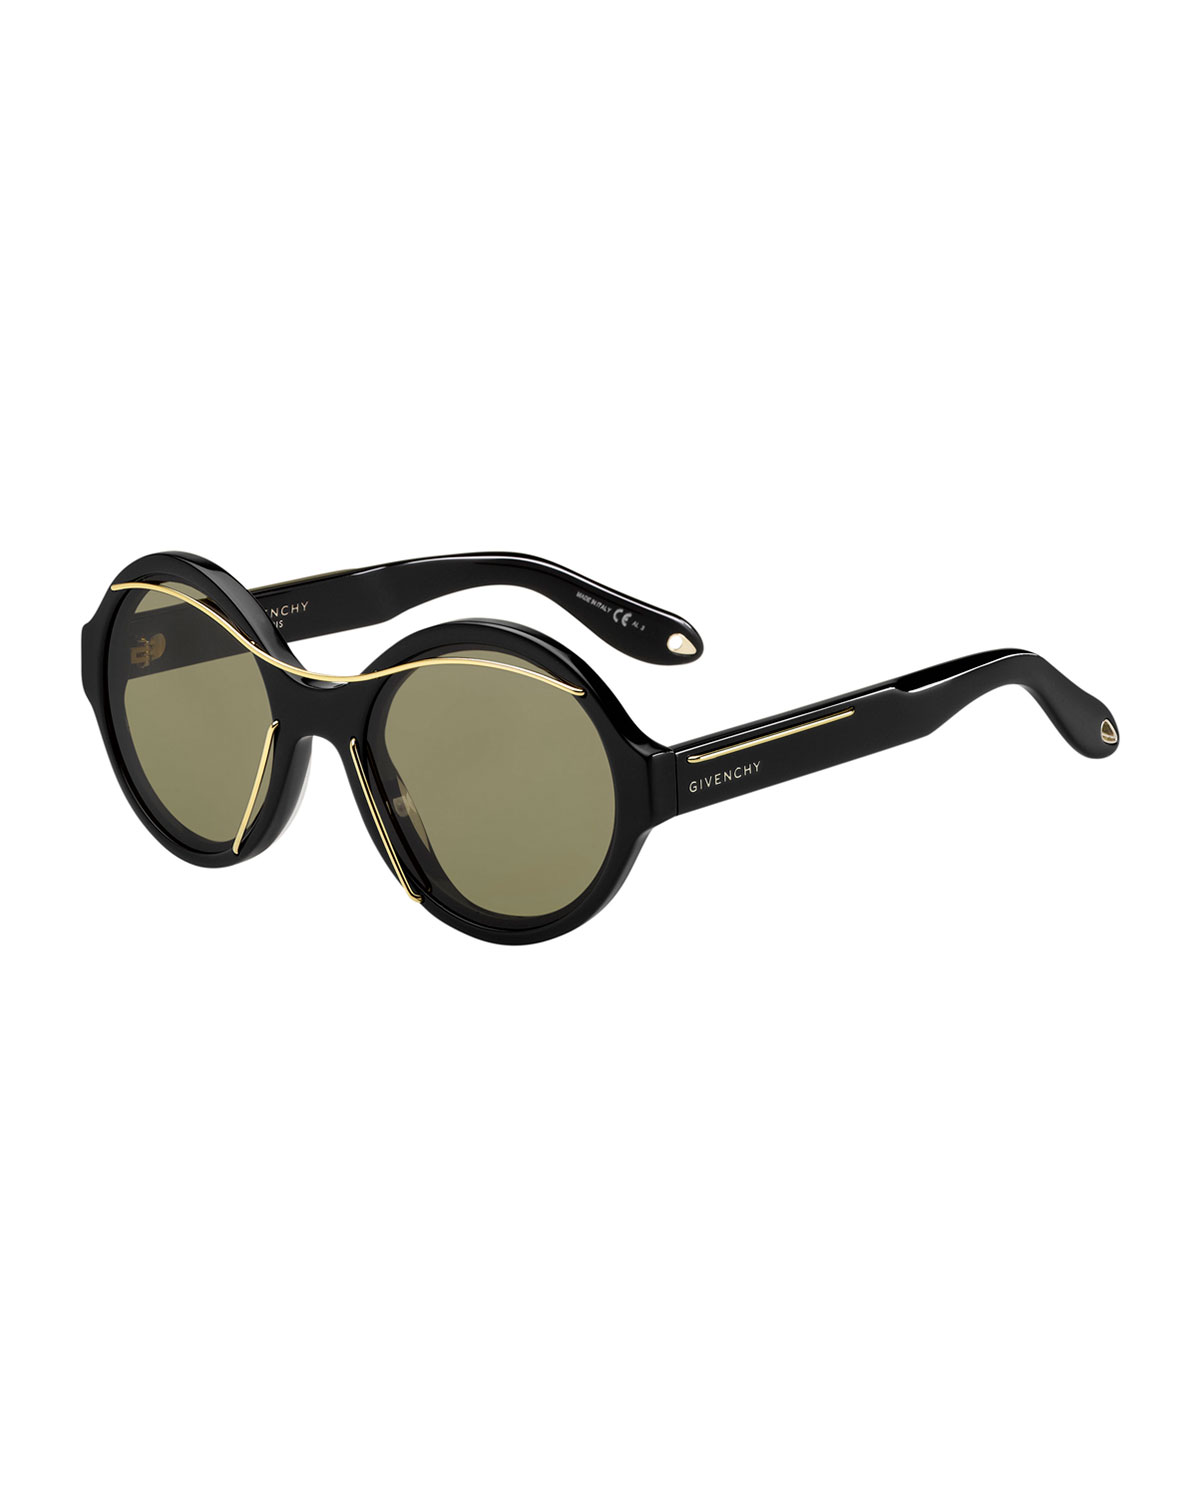 2659b8f166 Givenchy Round Acetate Sunglasses w Metal Wires